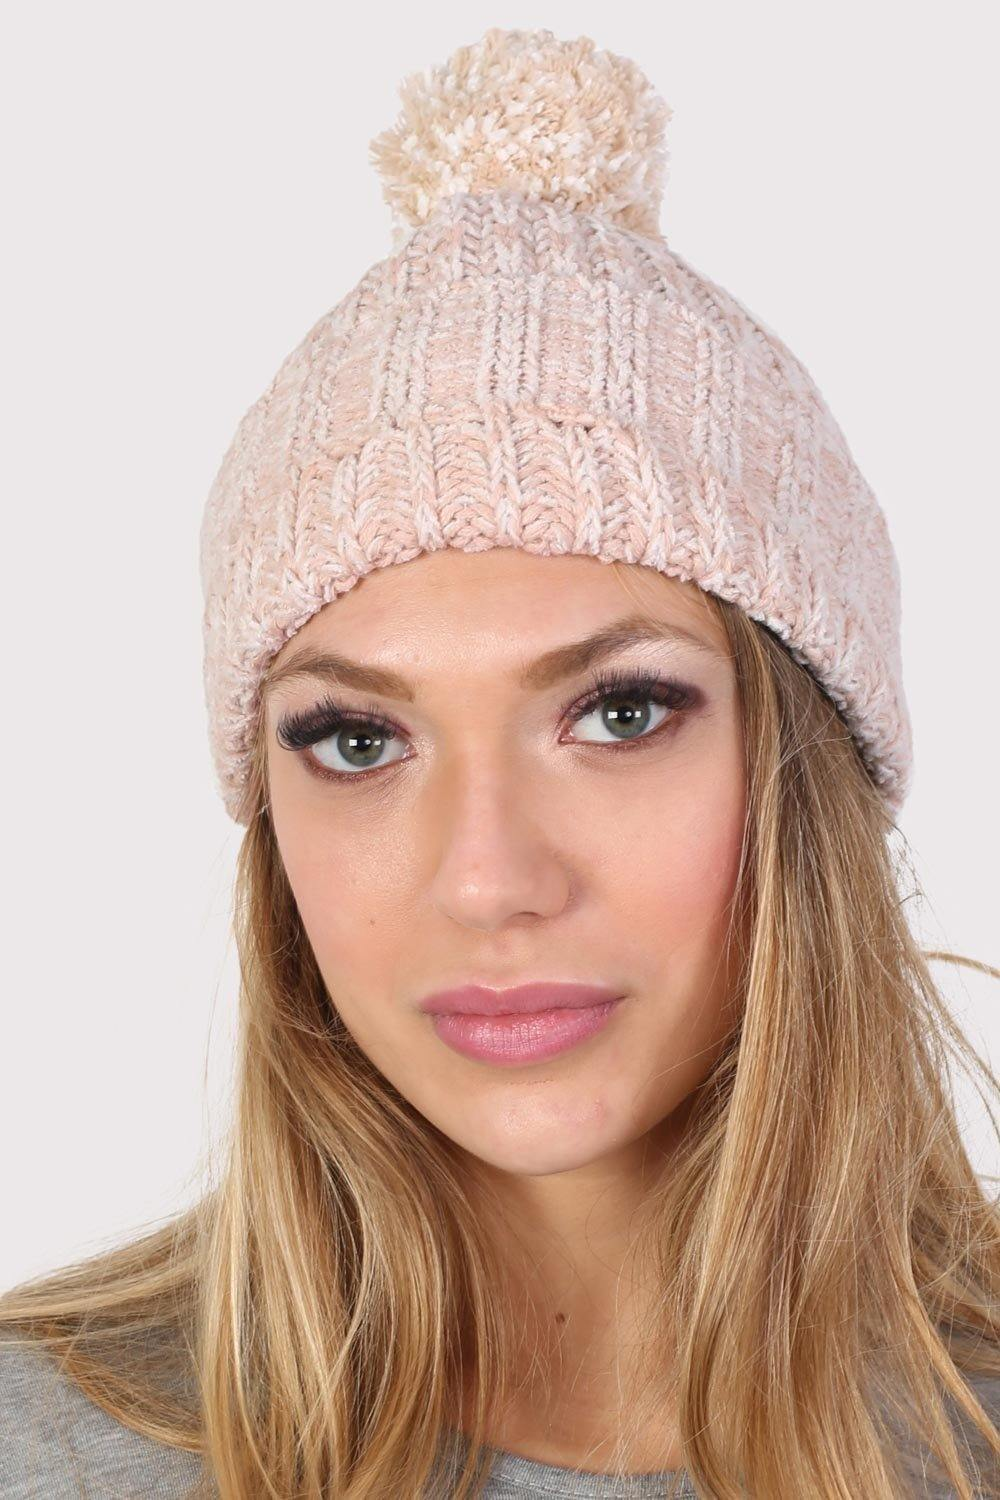 Pom Pom Marl Ribbed Beanie Hat in Pale Pink 0